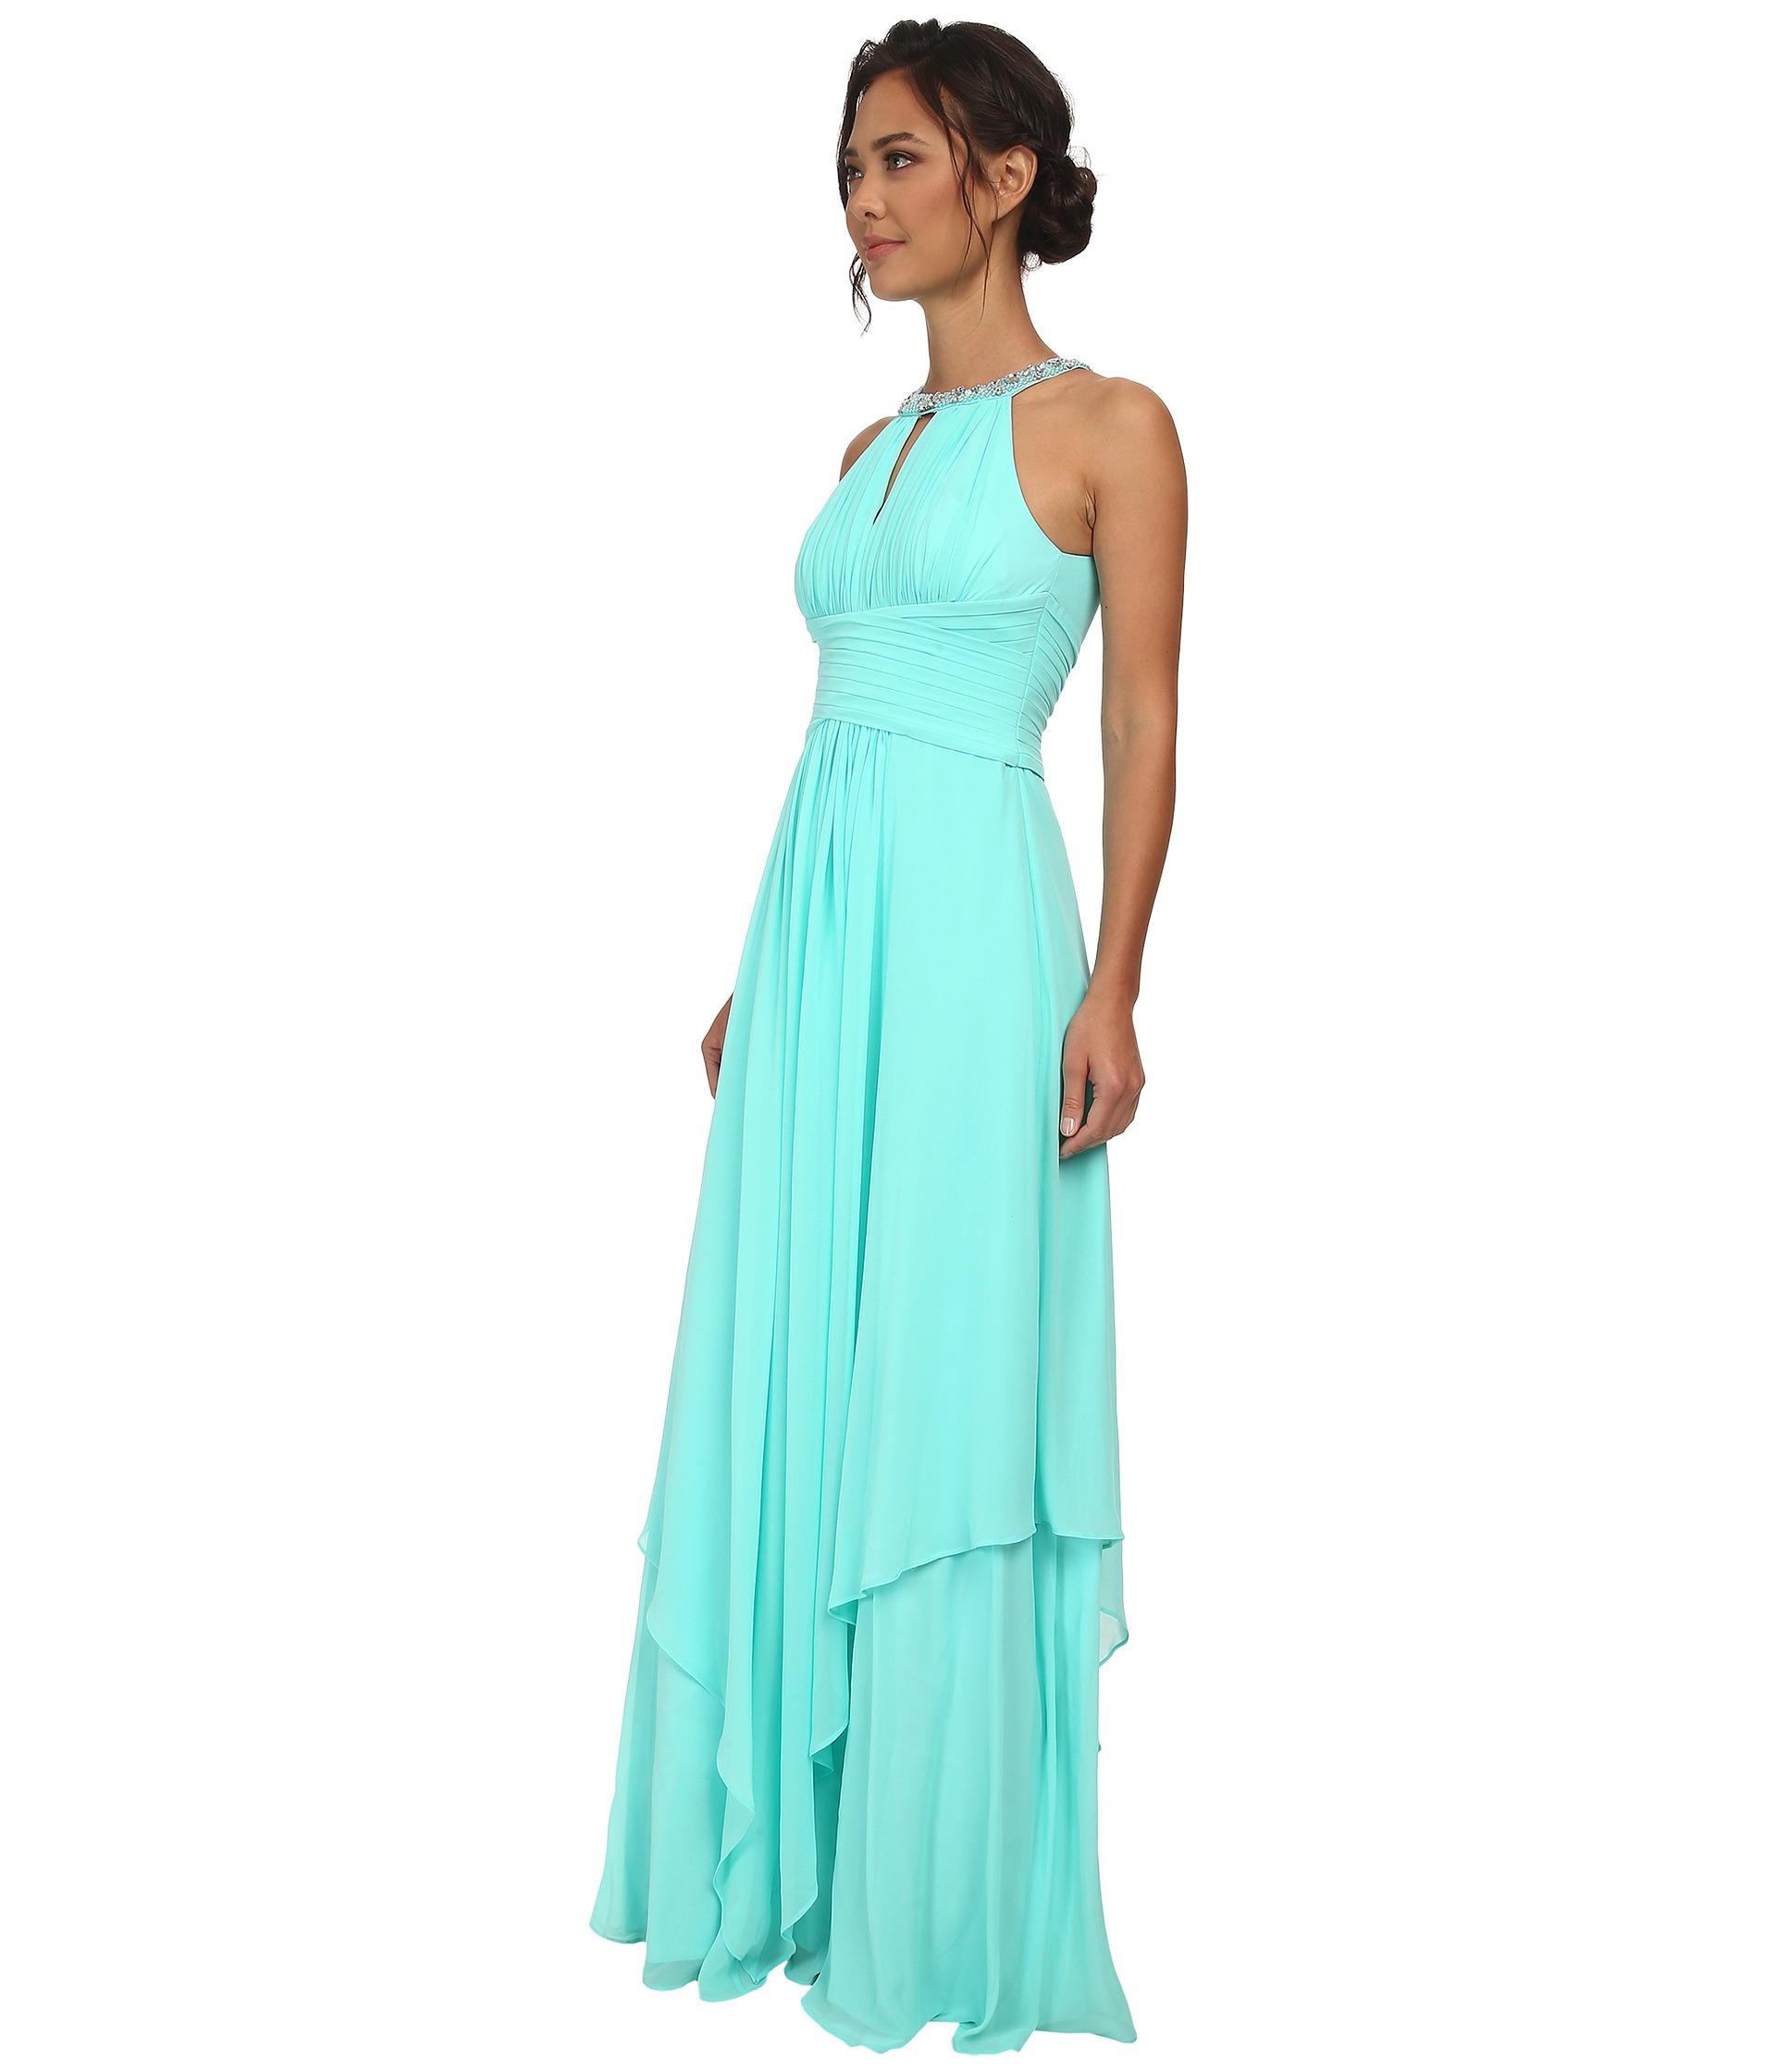 Lyst - Donna Morgan Siena Beaded Halter Long Gown Dress in Blue